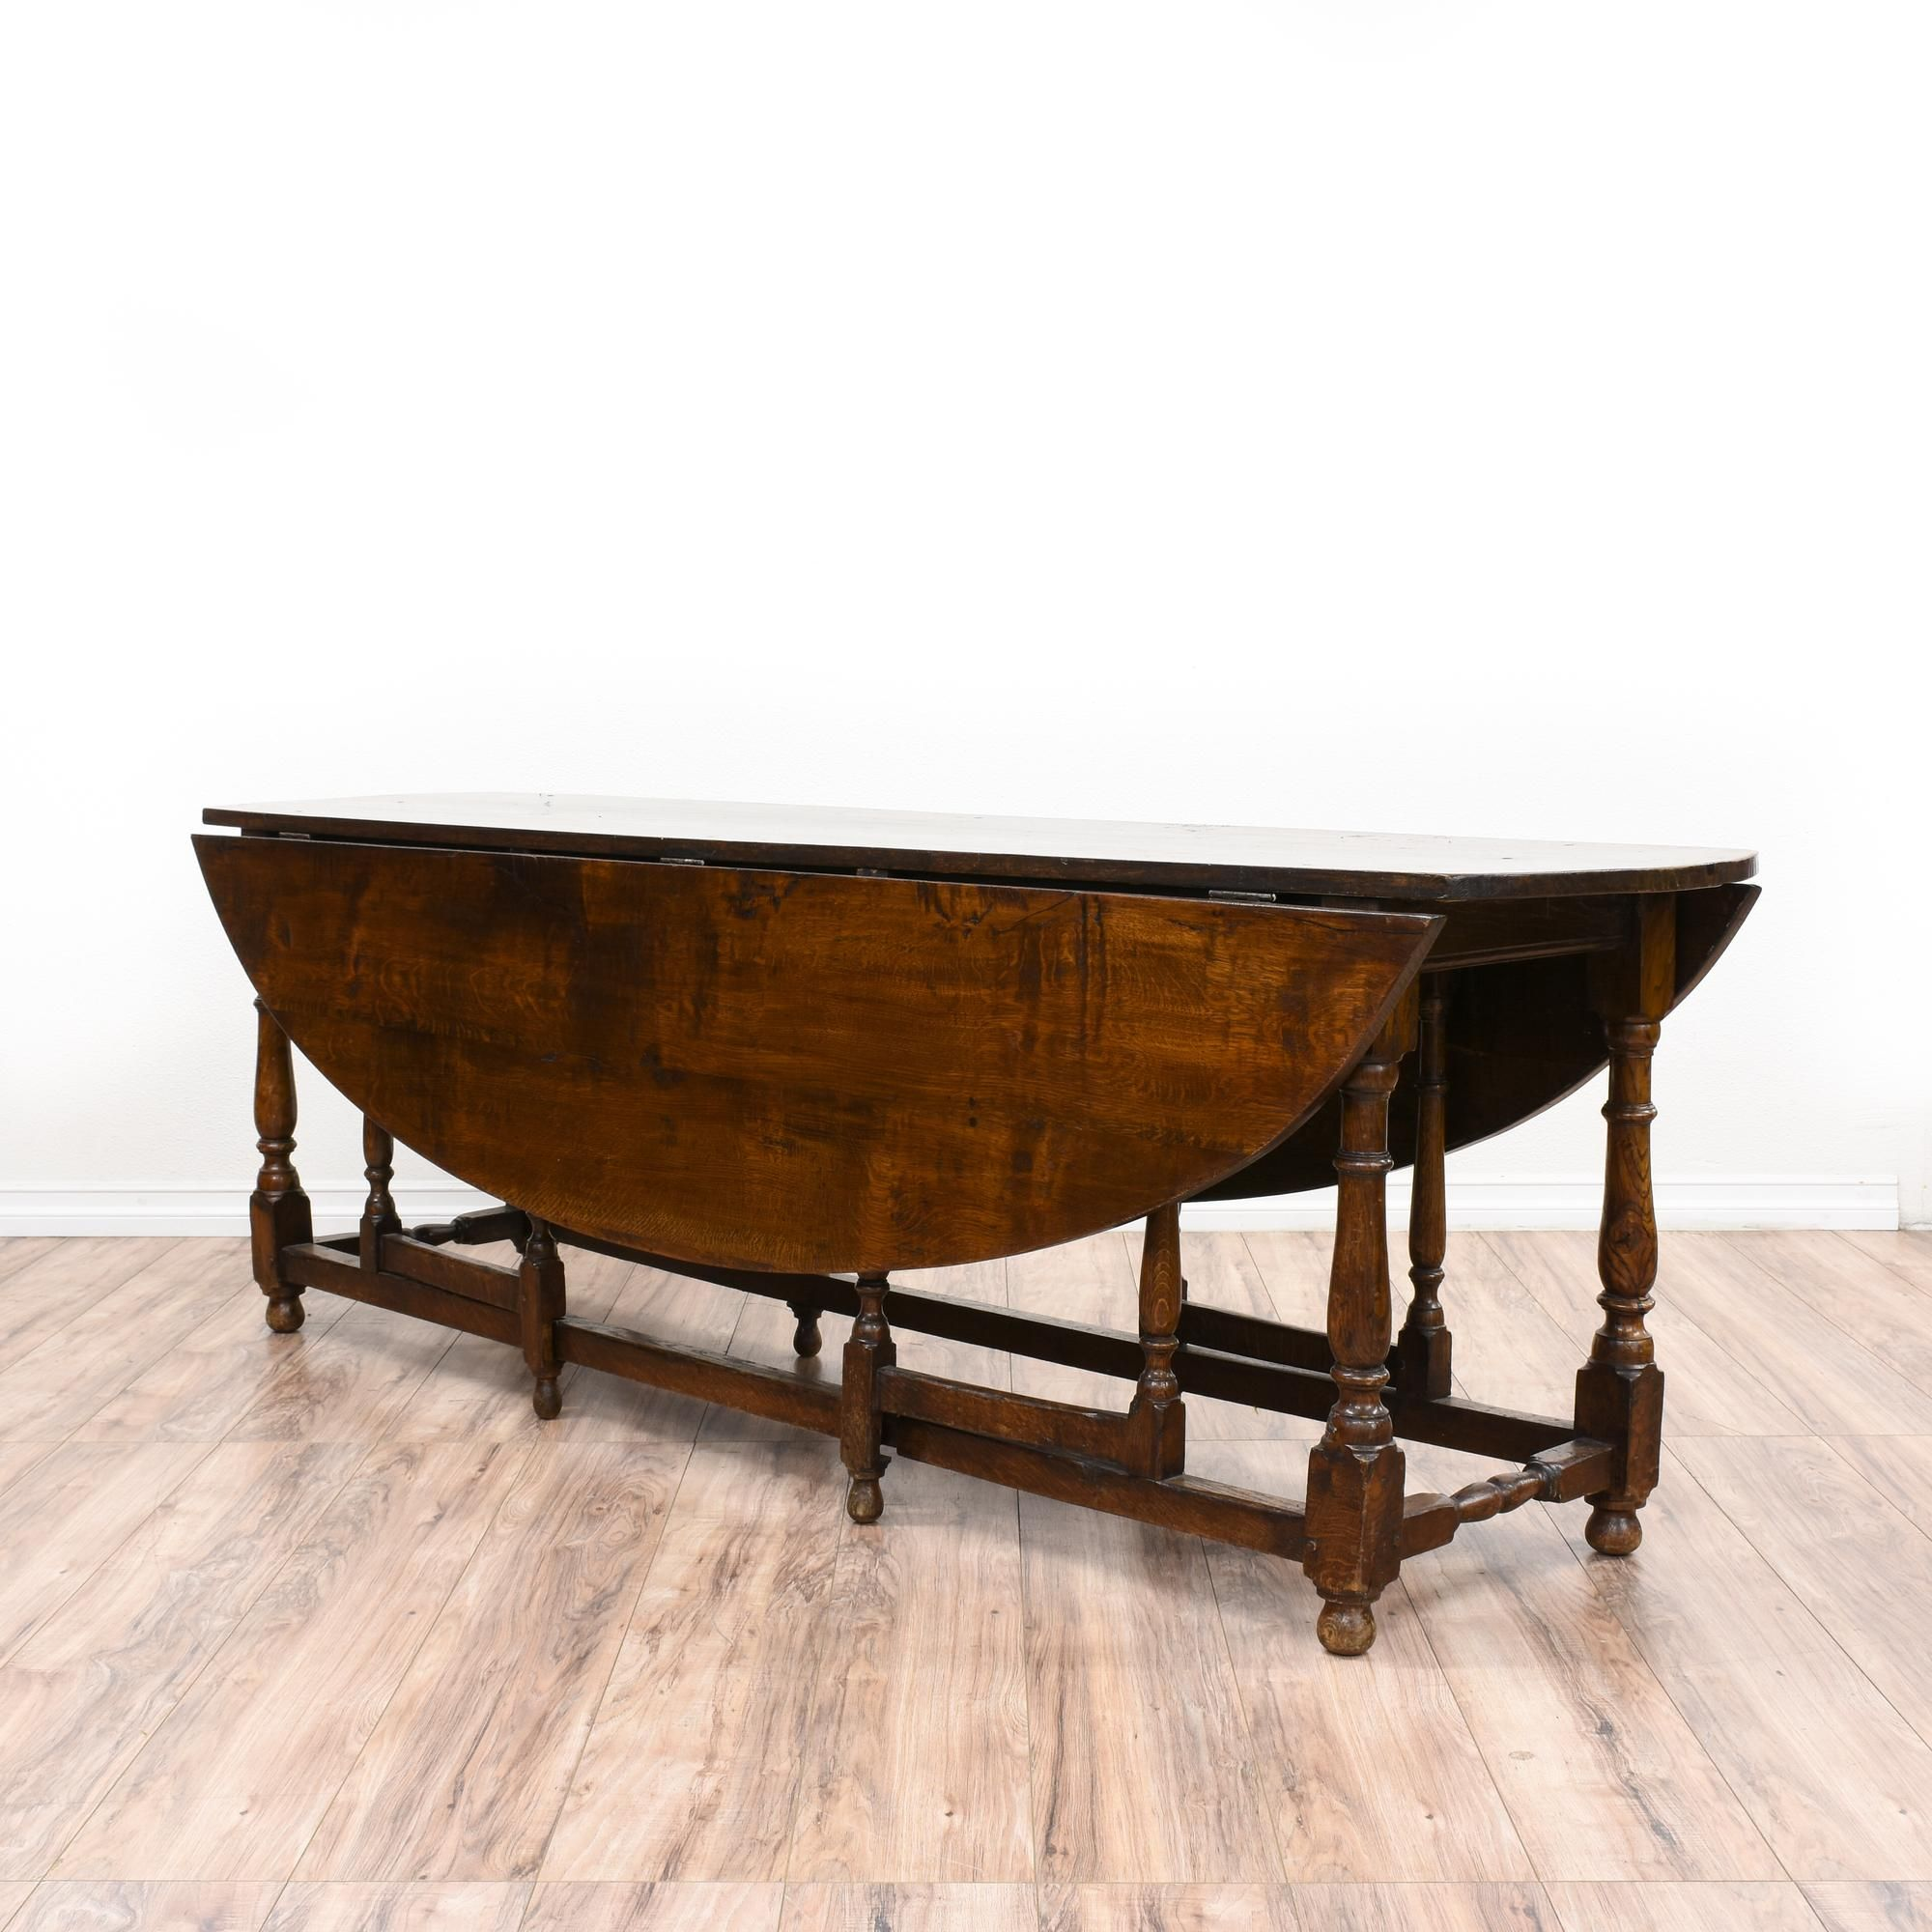 This Antique Drop Leaf Dining Table Is Featured In A Solid Wood With Glossy Oak